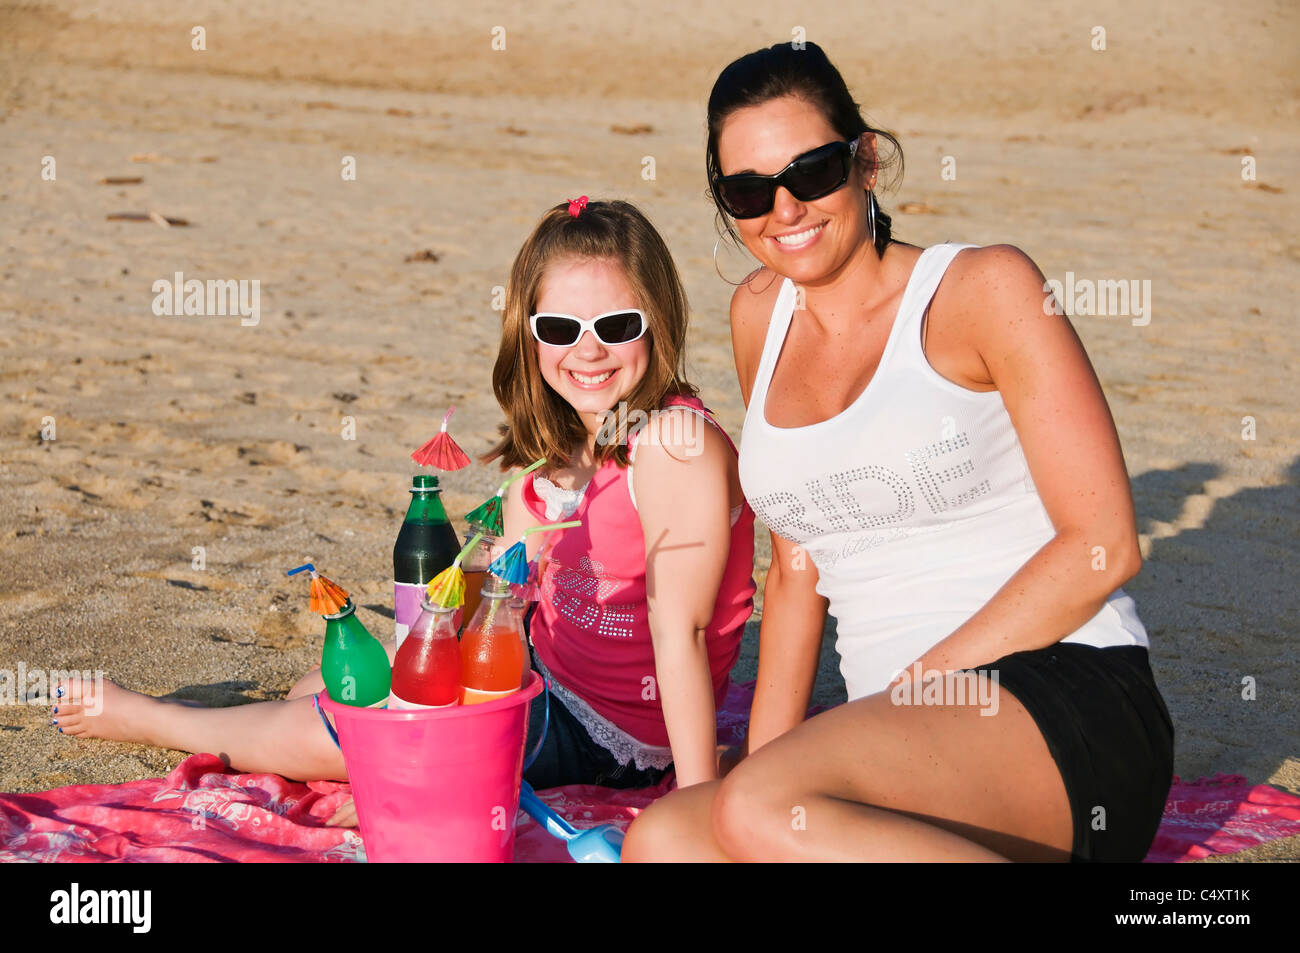 A bucket filled with sodas and their umbrella straws sits in front of a young girl and her adult female friend at - Stock Image